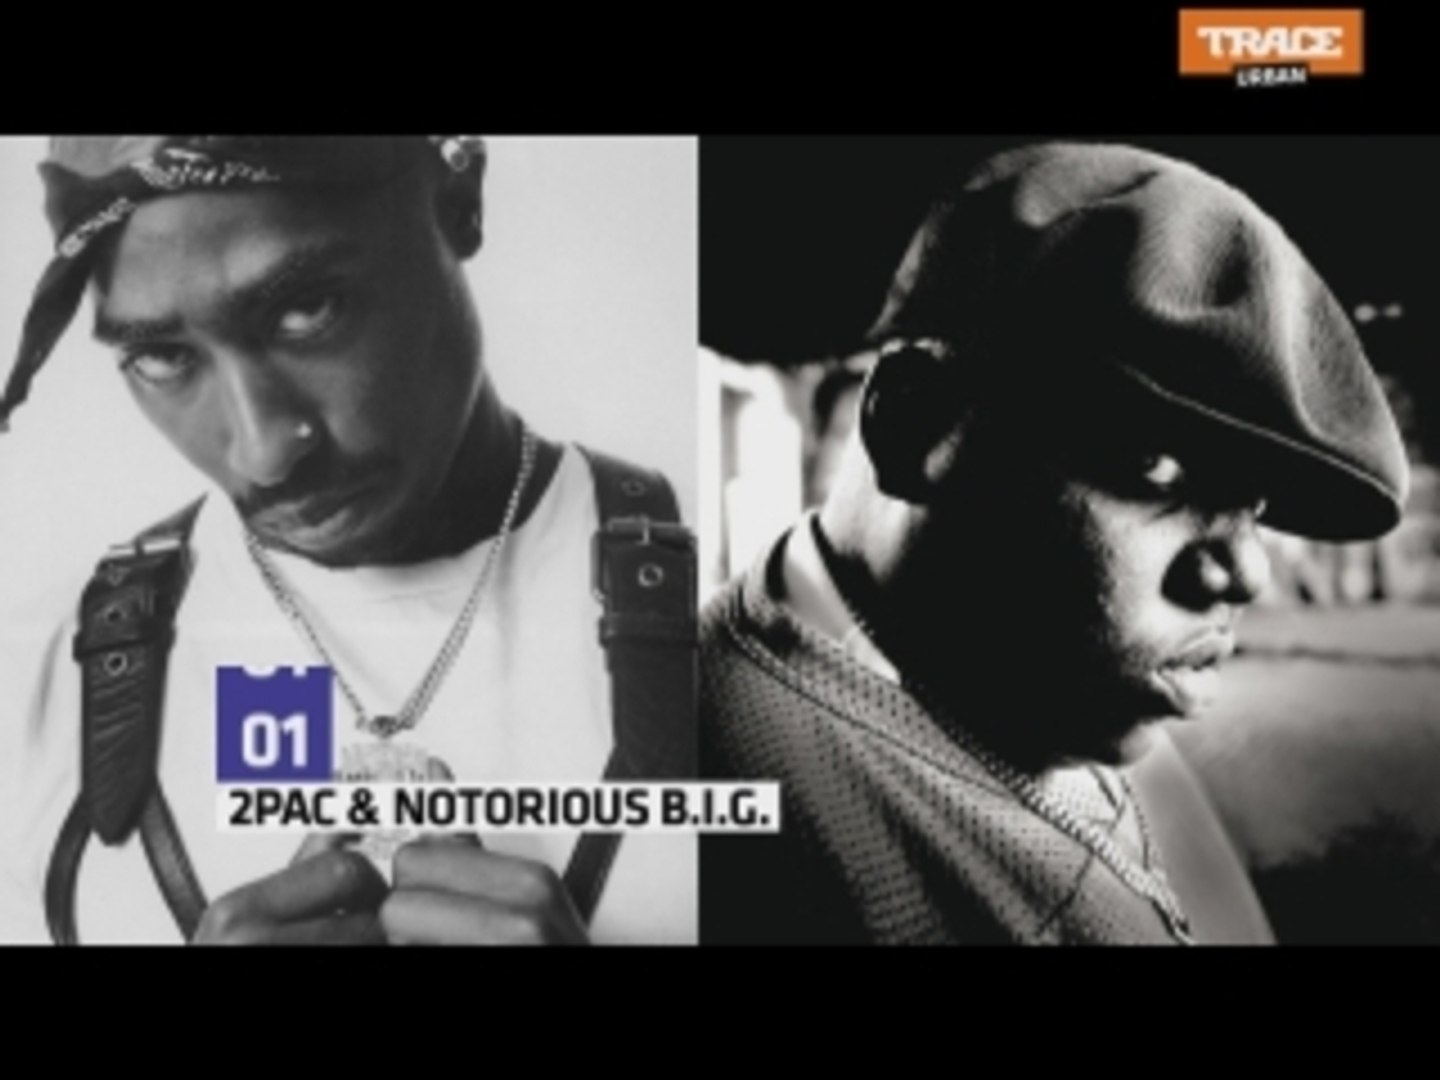 Top New: New revelations about Tupac and Biggie murders